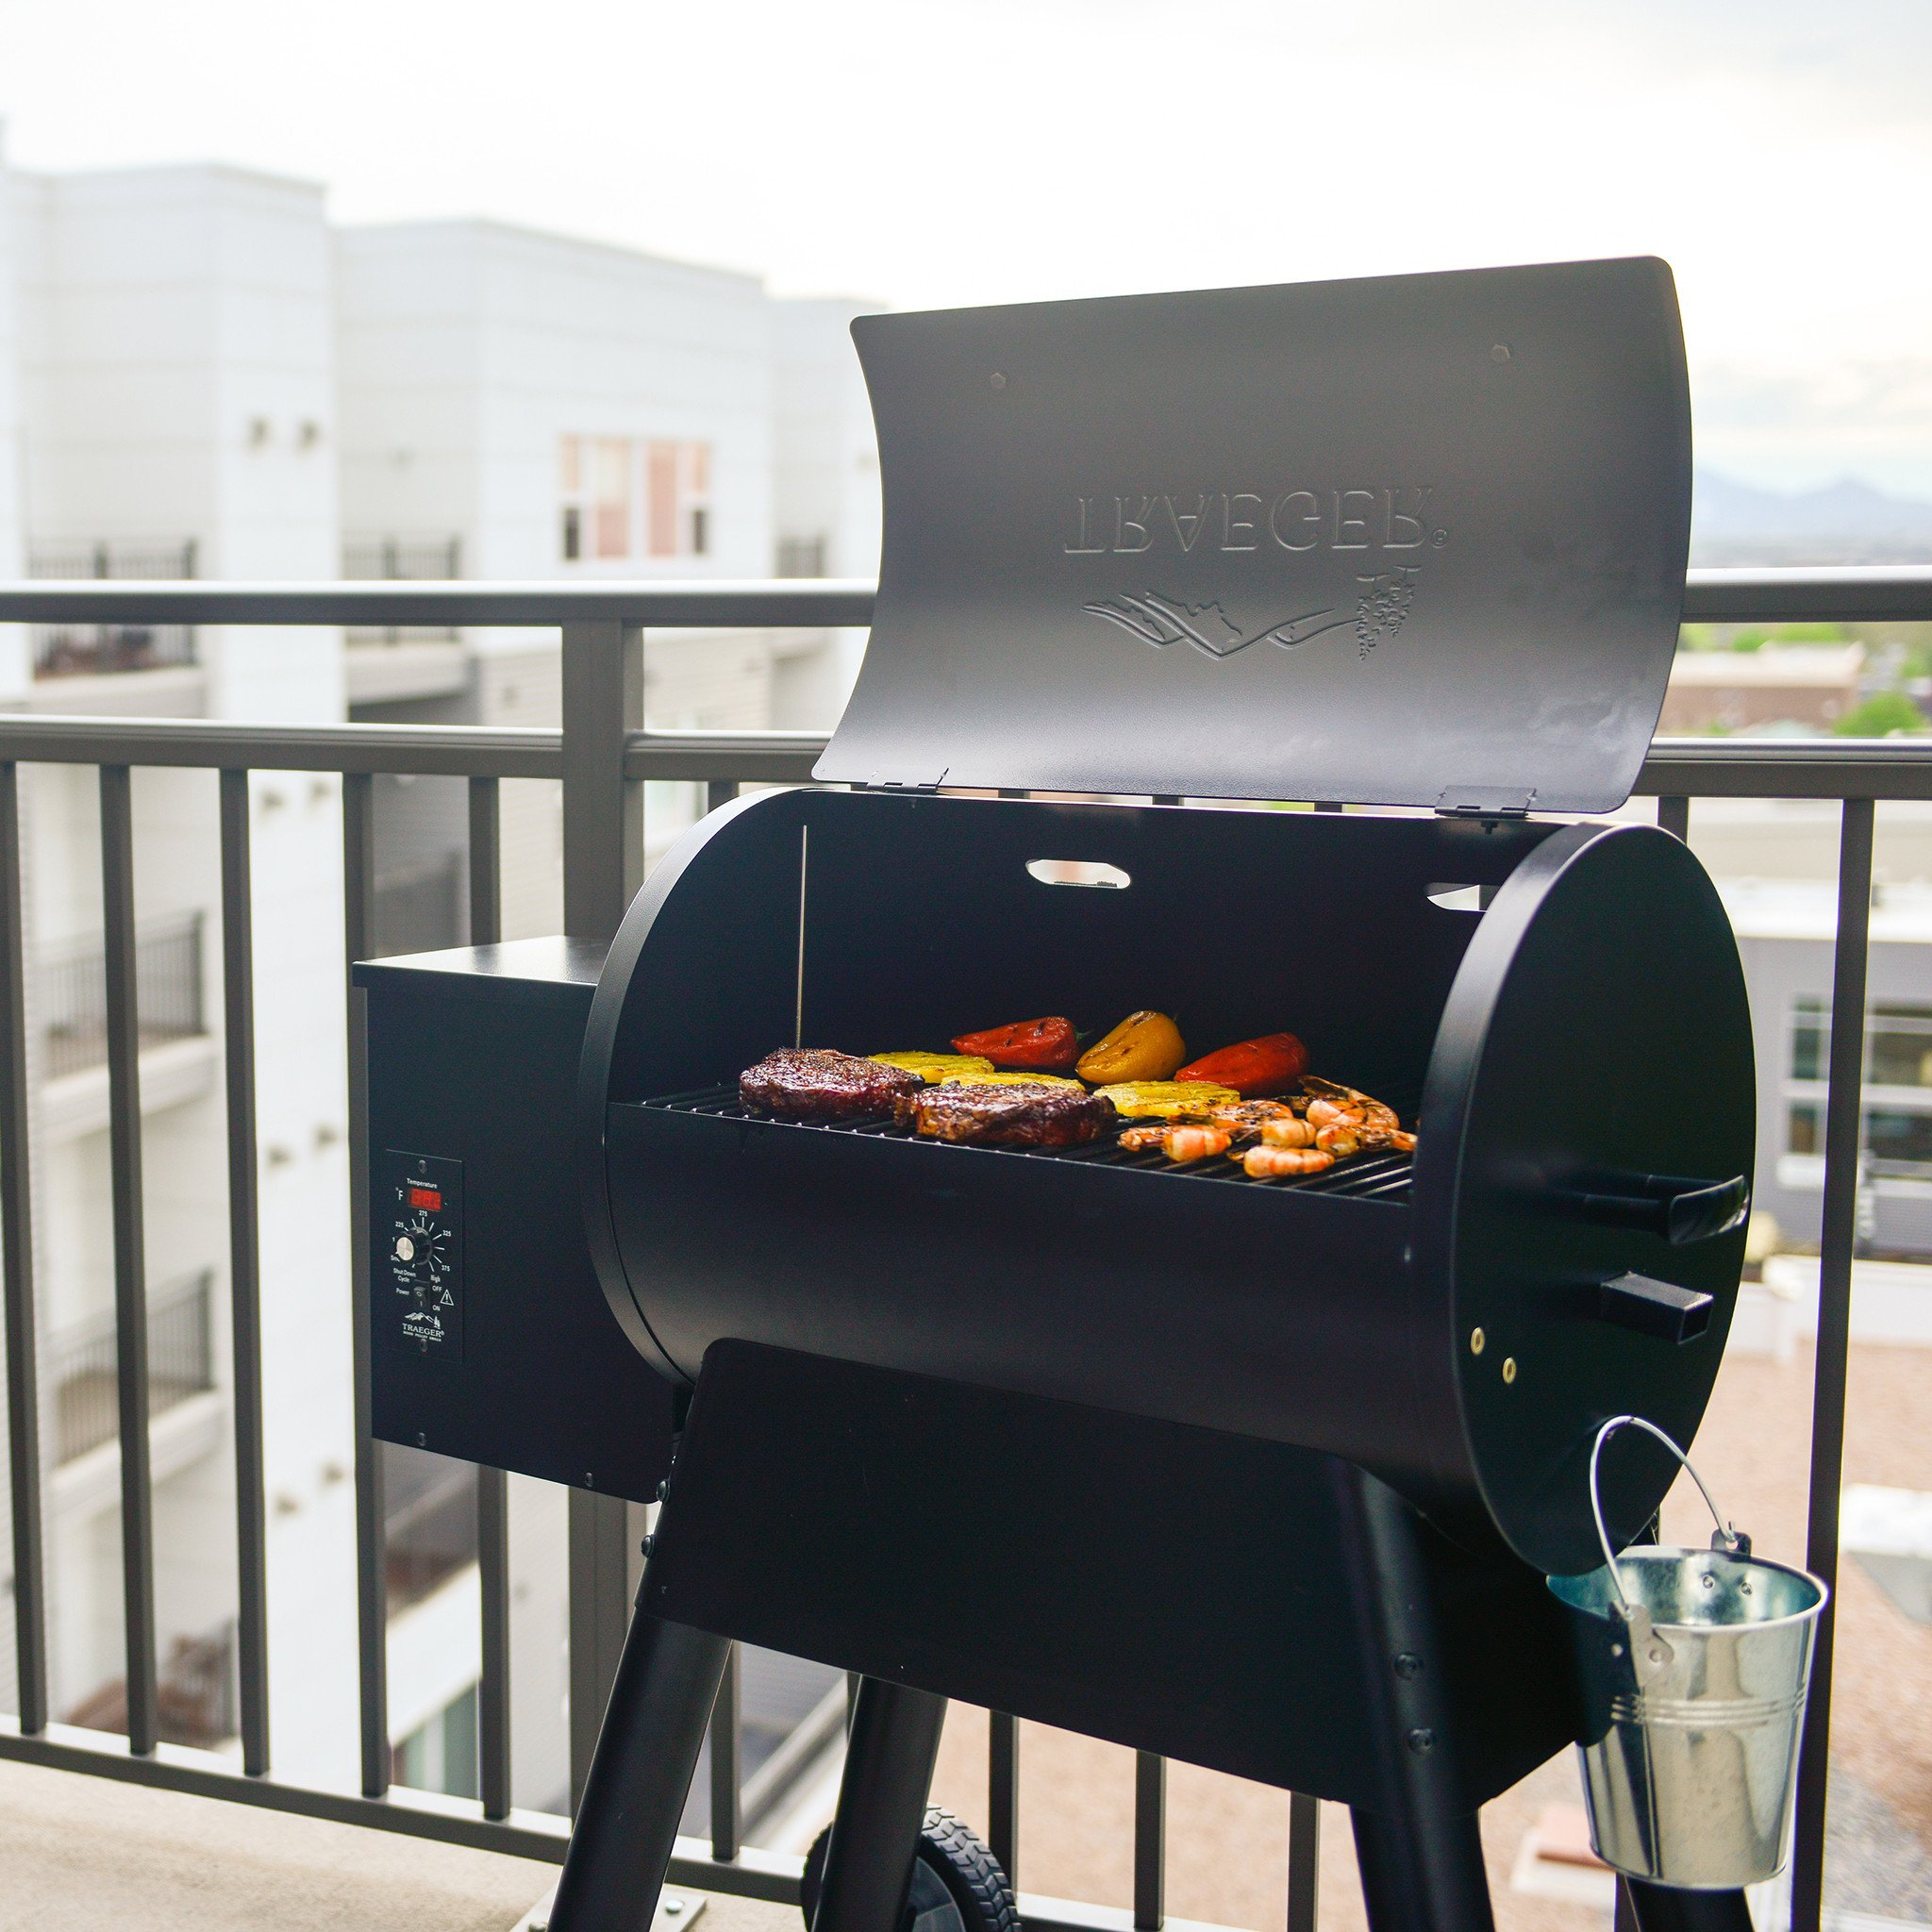 BF-Lifestyle_Bronson_20_Food_on_Grill_Traeger_web_4fea15c0-18a8-4aa1-a66b-80580d19d9d3_2048x.jpg